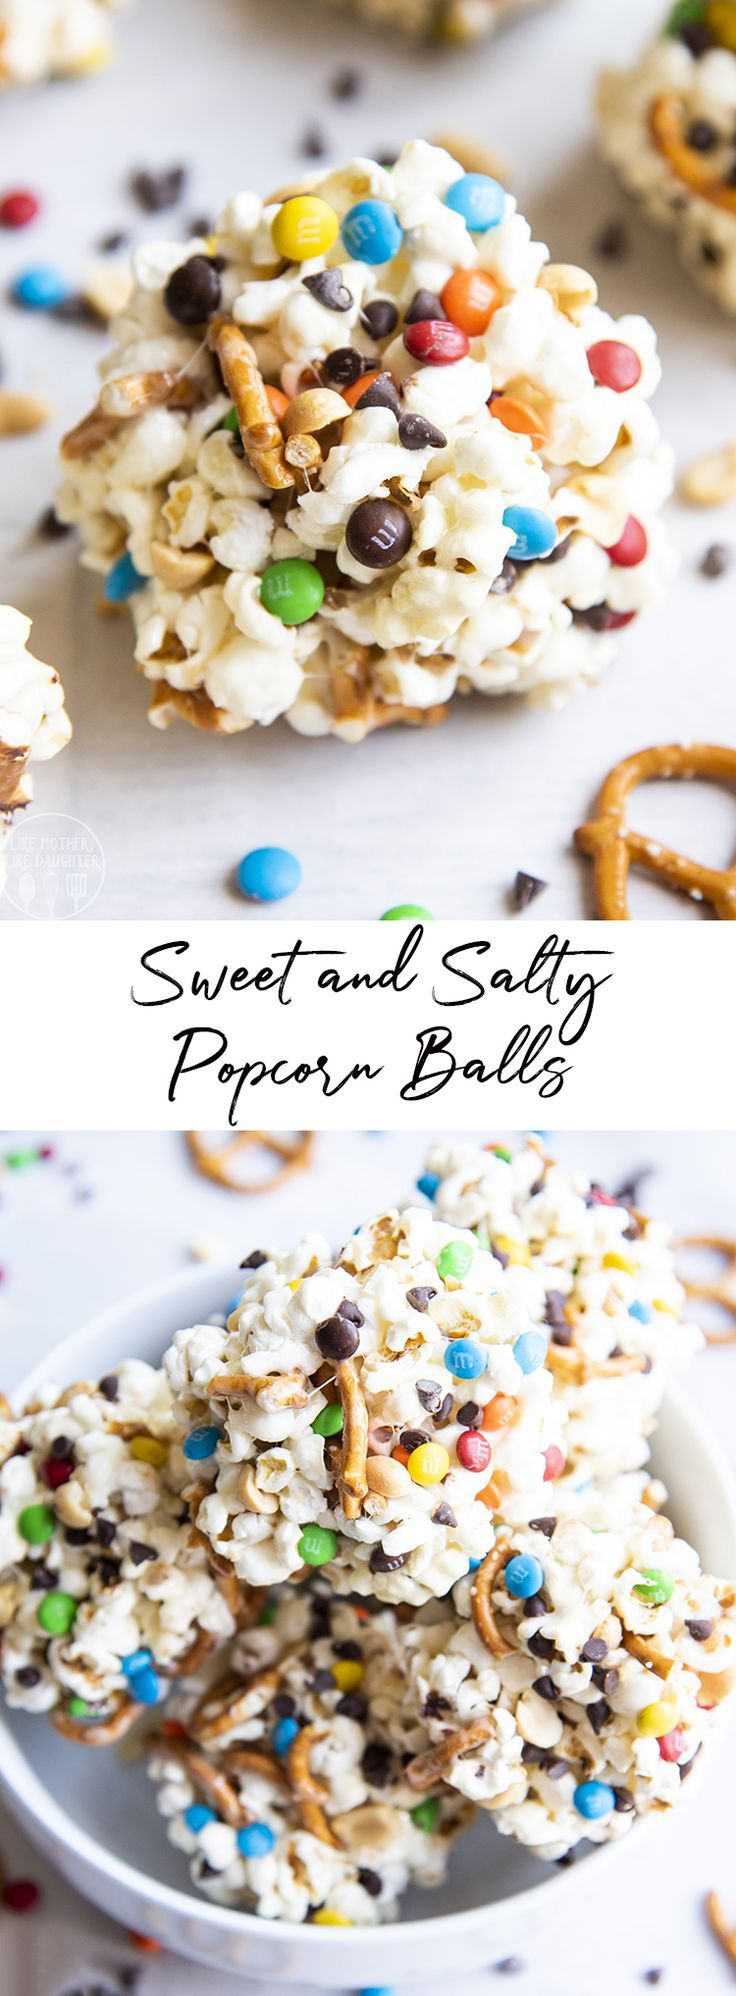 Sweet and Salty Popcorn Balls – Like Mother, Like Daughter